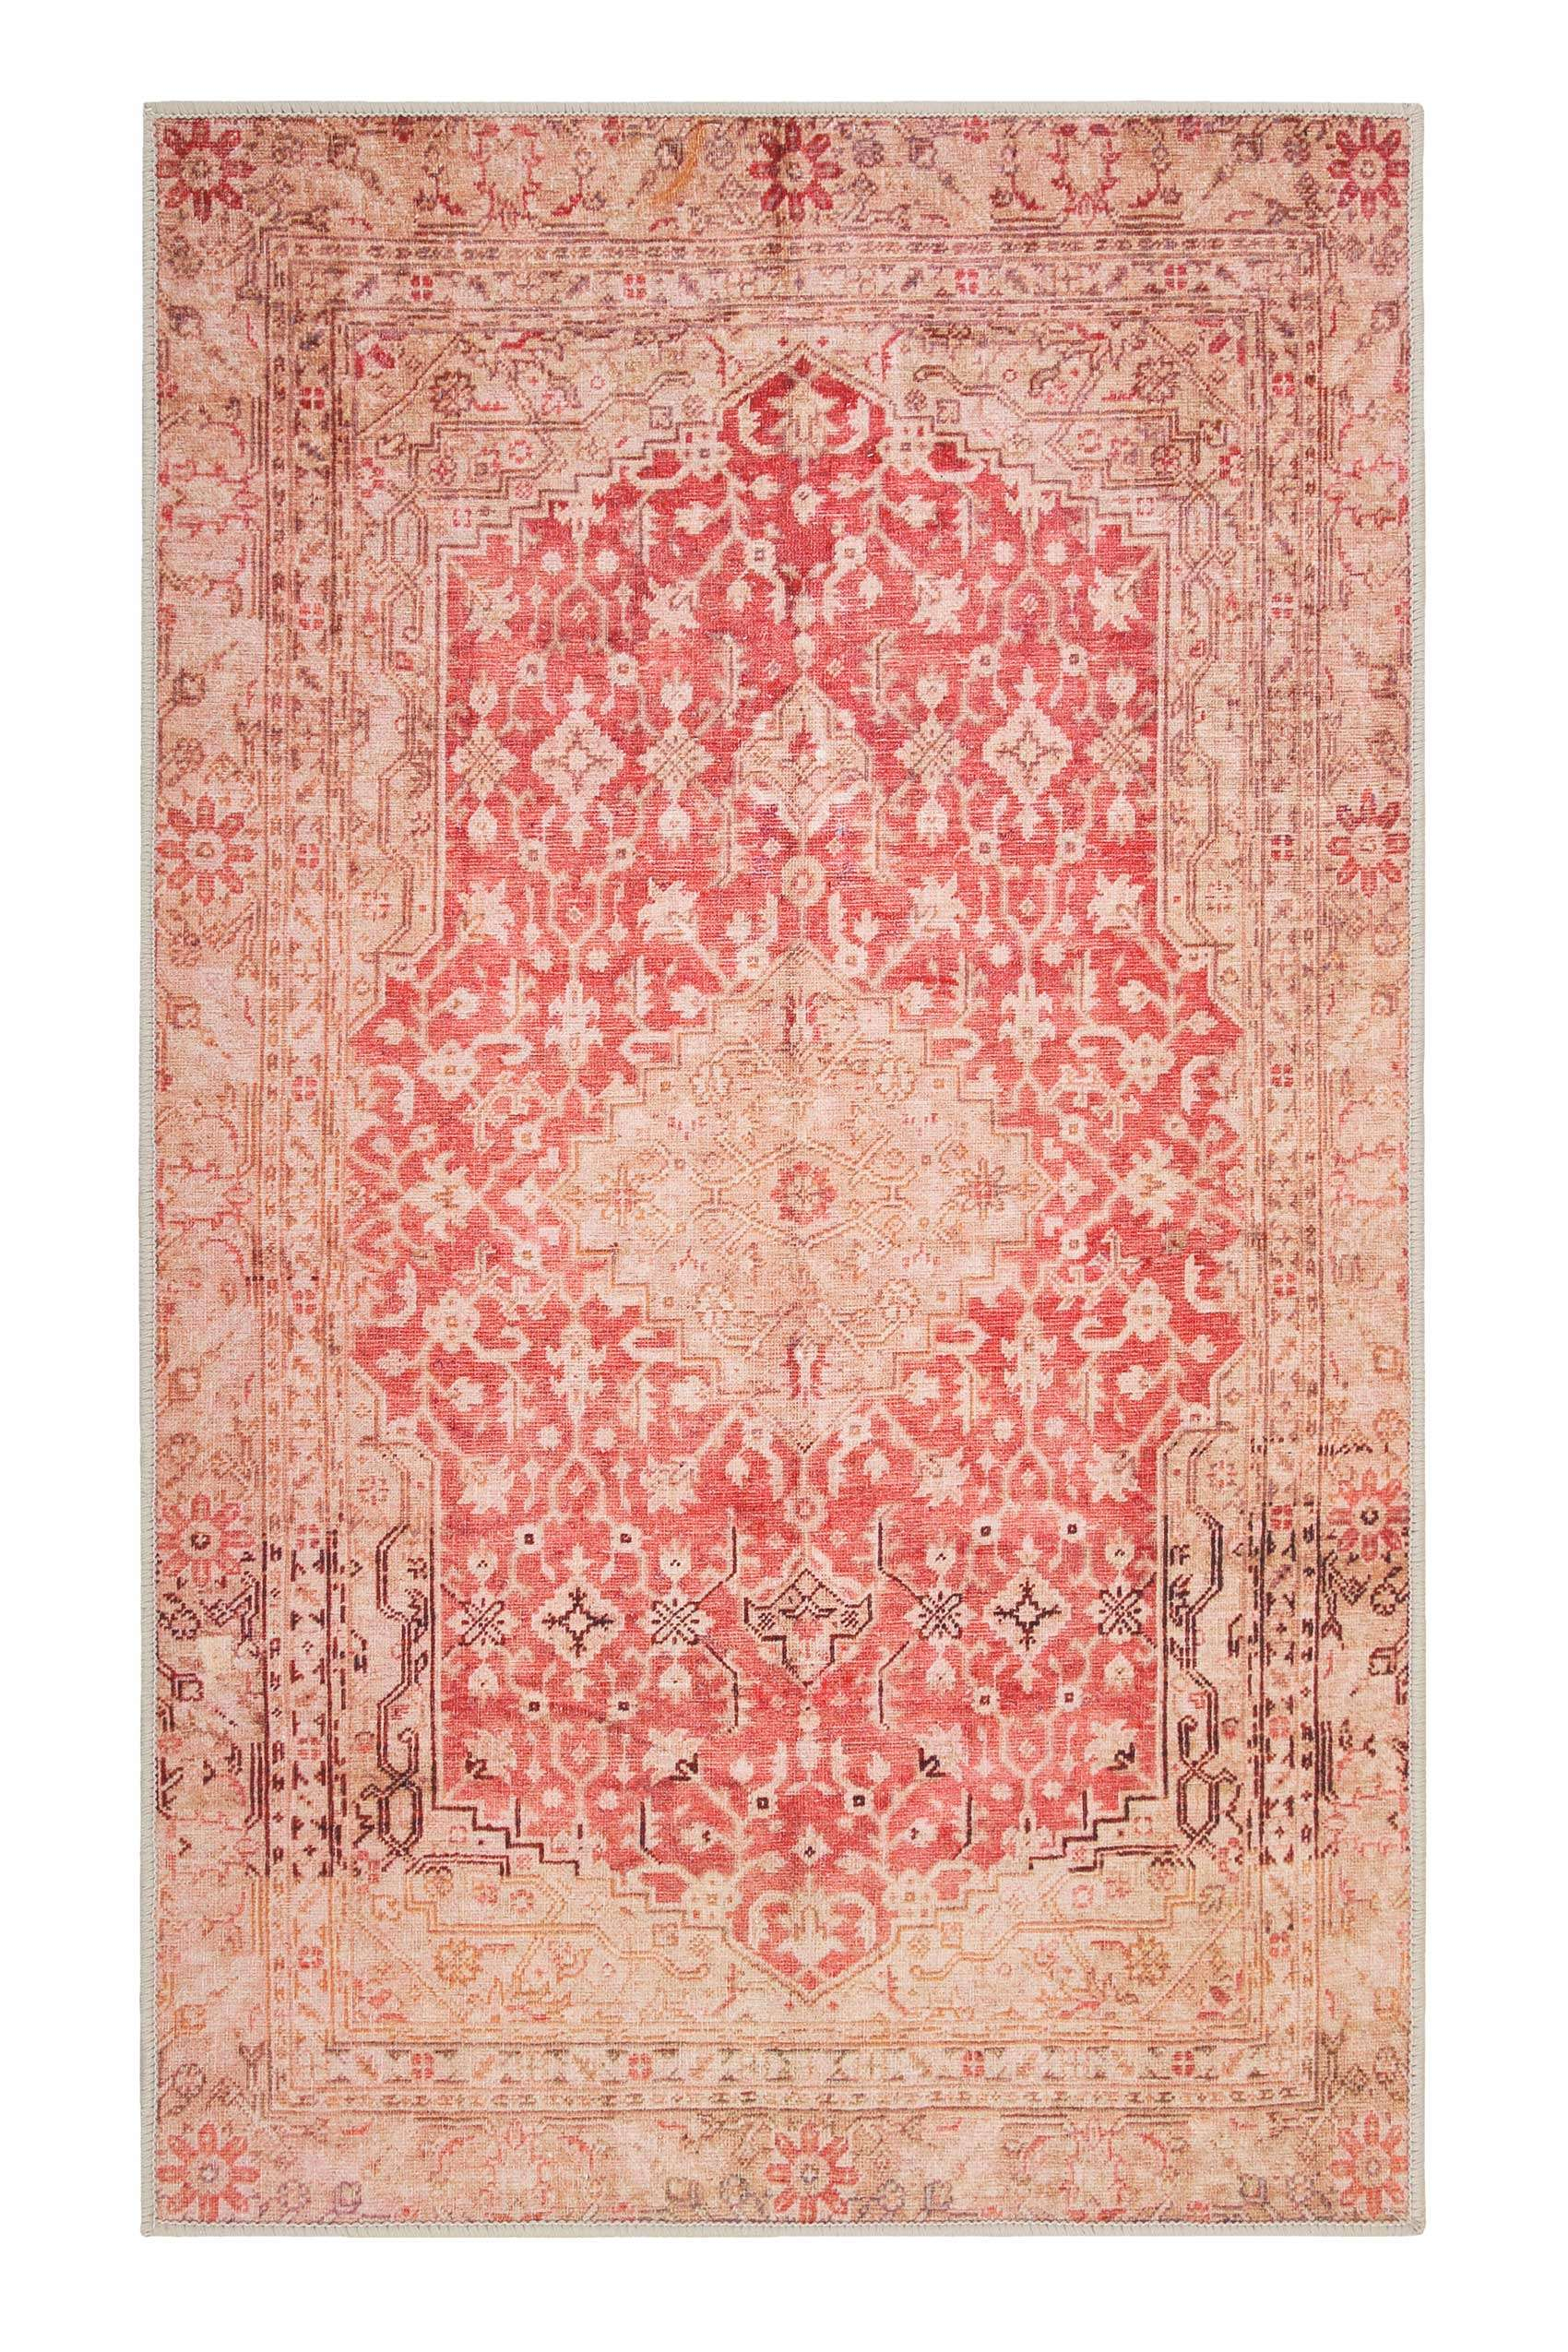 Badteppich Rot Badteppich Rot Vintage Oriental » Polaroid « Weconhome | Outlet Teppiche